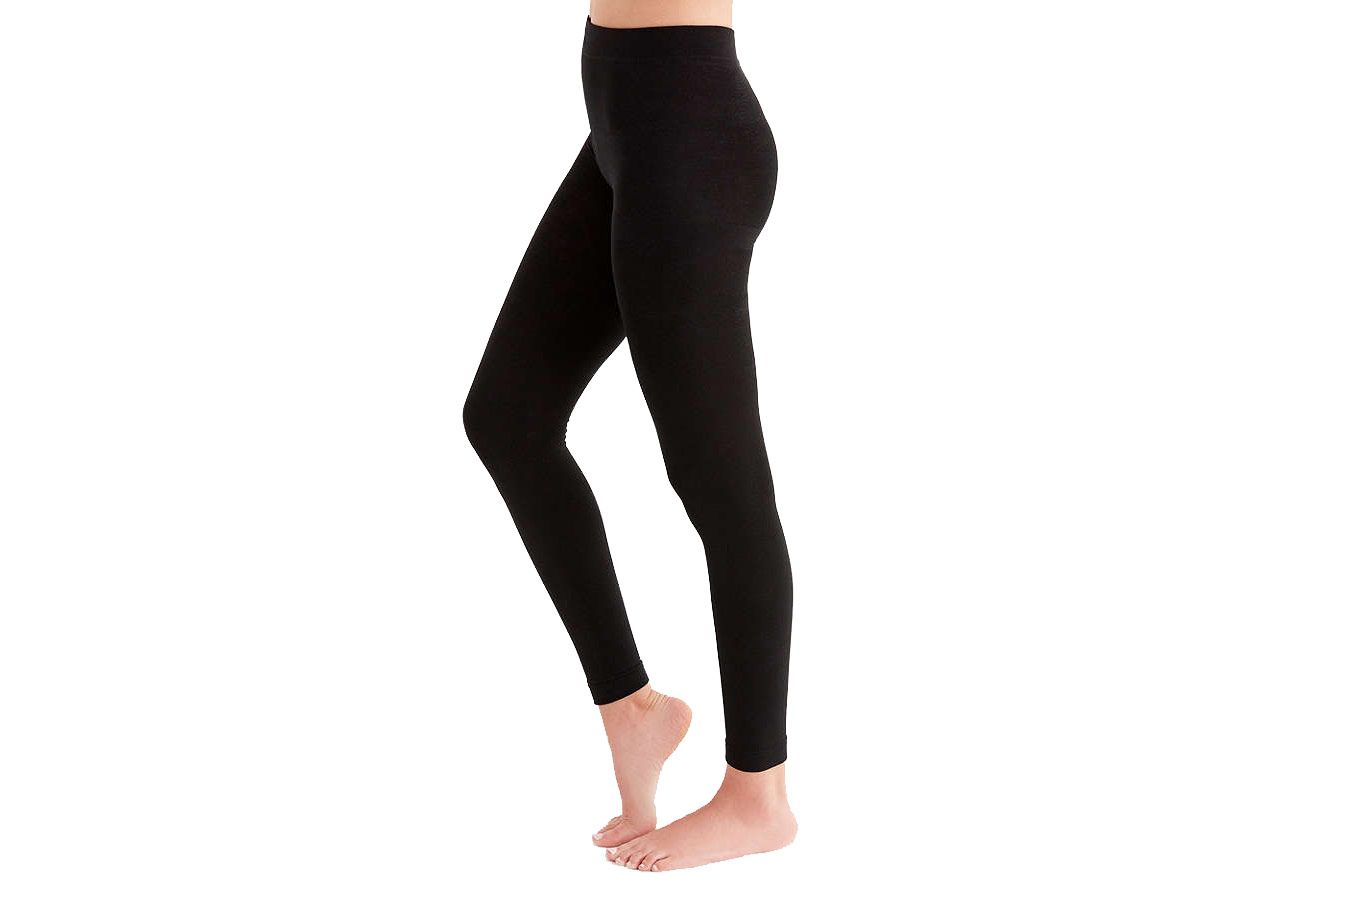 bdc2b663bccb0 The Best Winter Fleece-Lined Leggings for Women